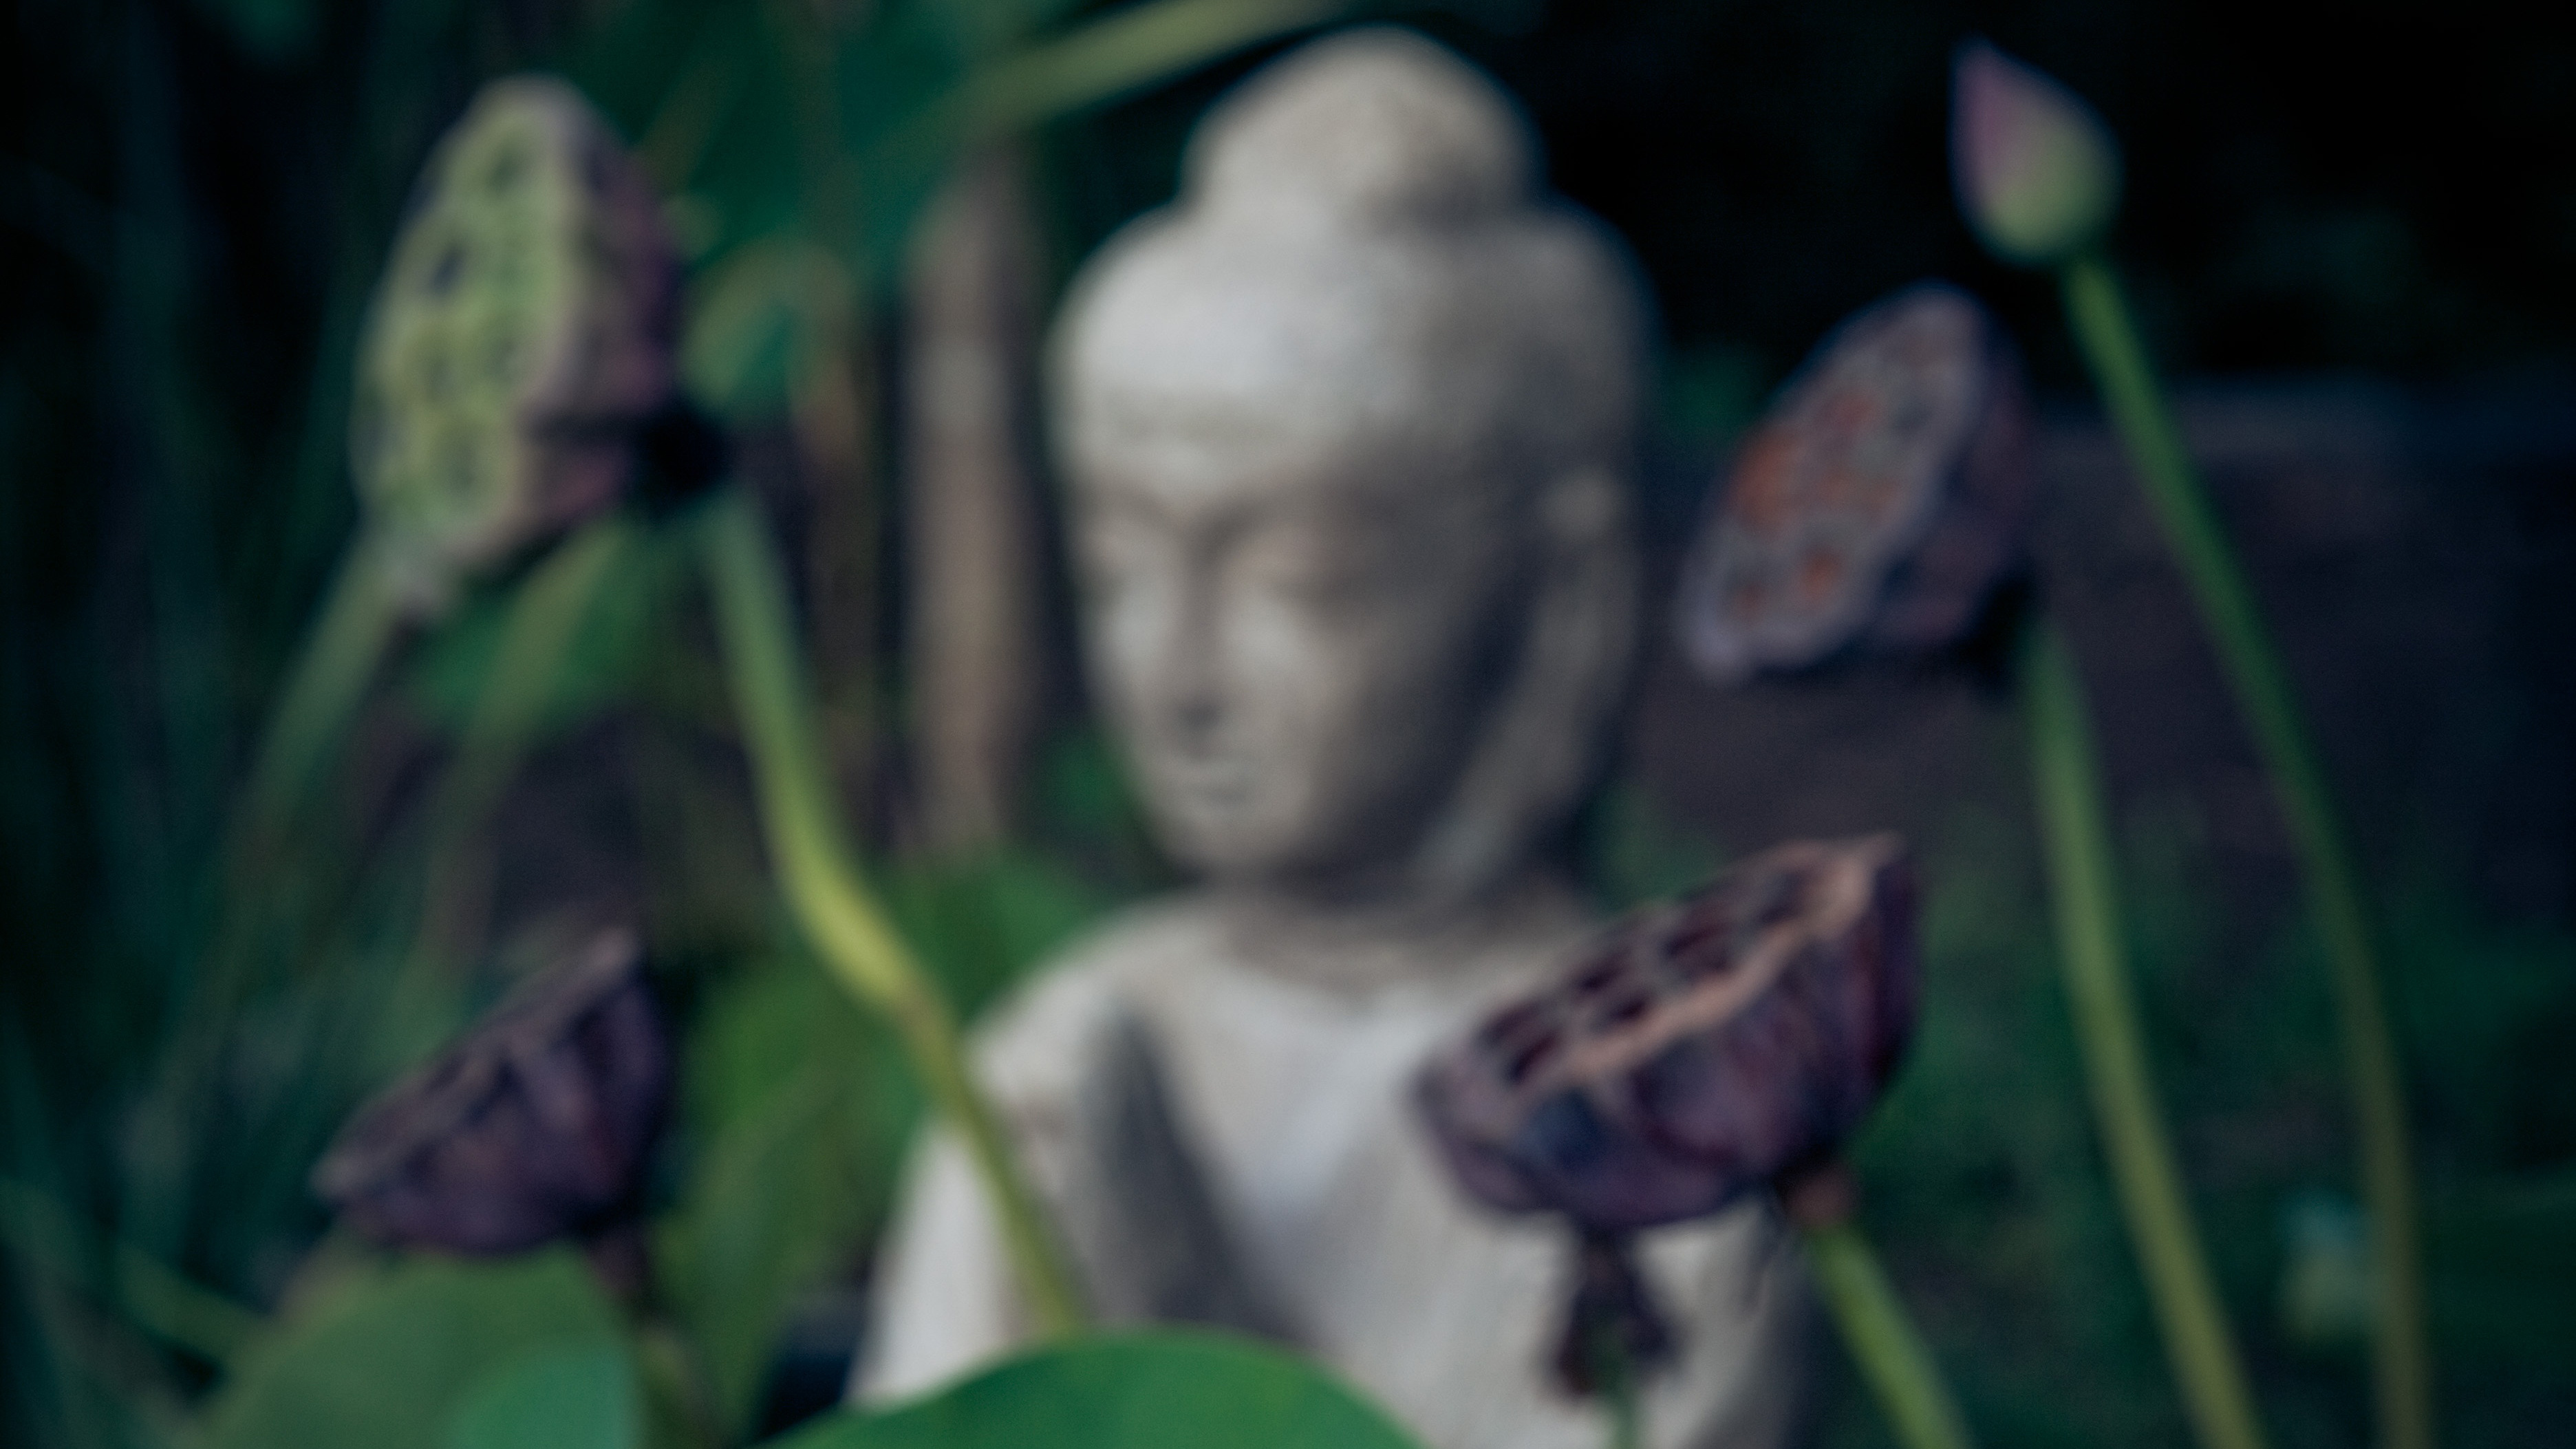 10 Buddhist koans, and why understanding them is pointless